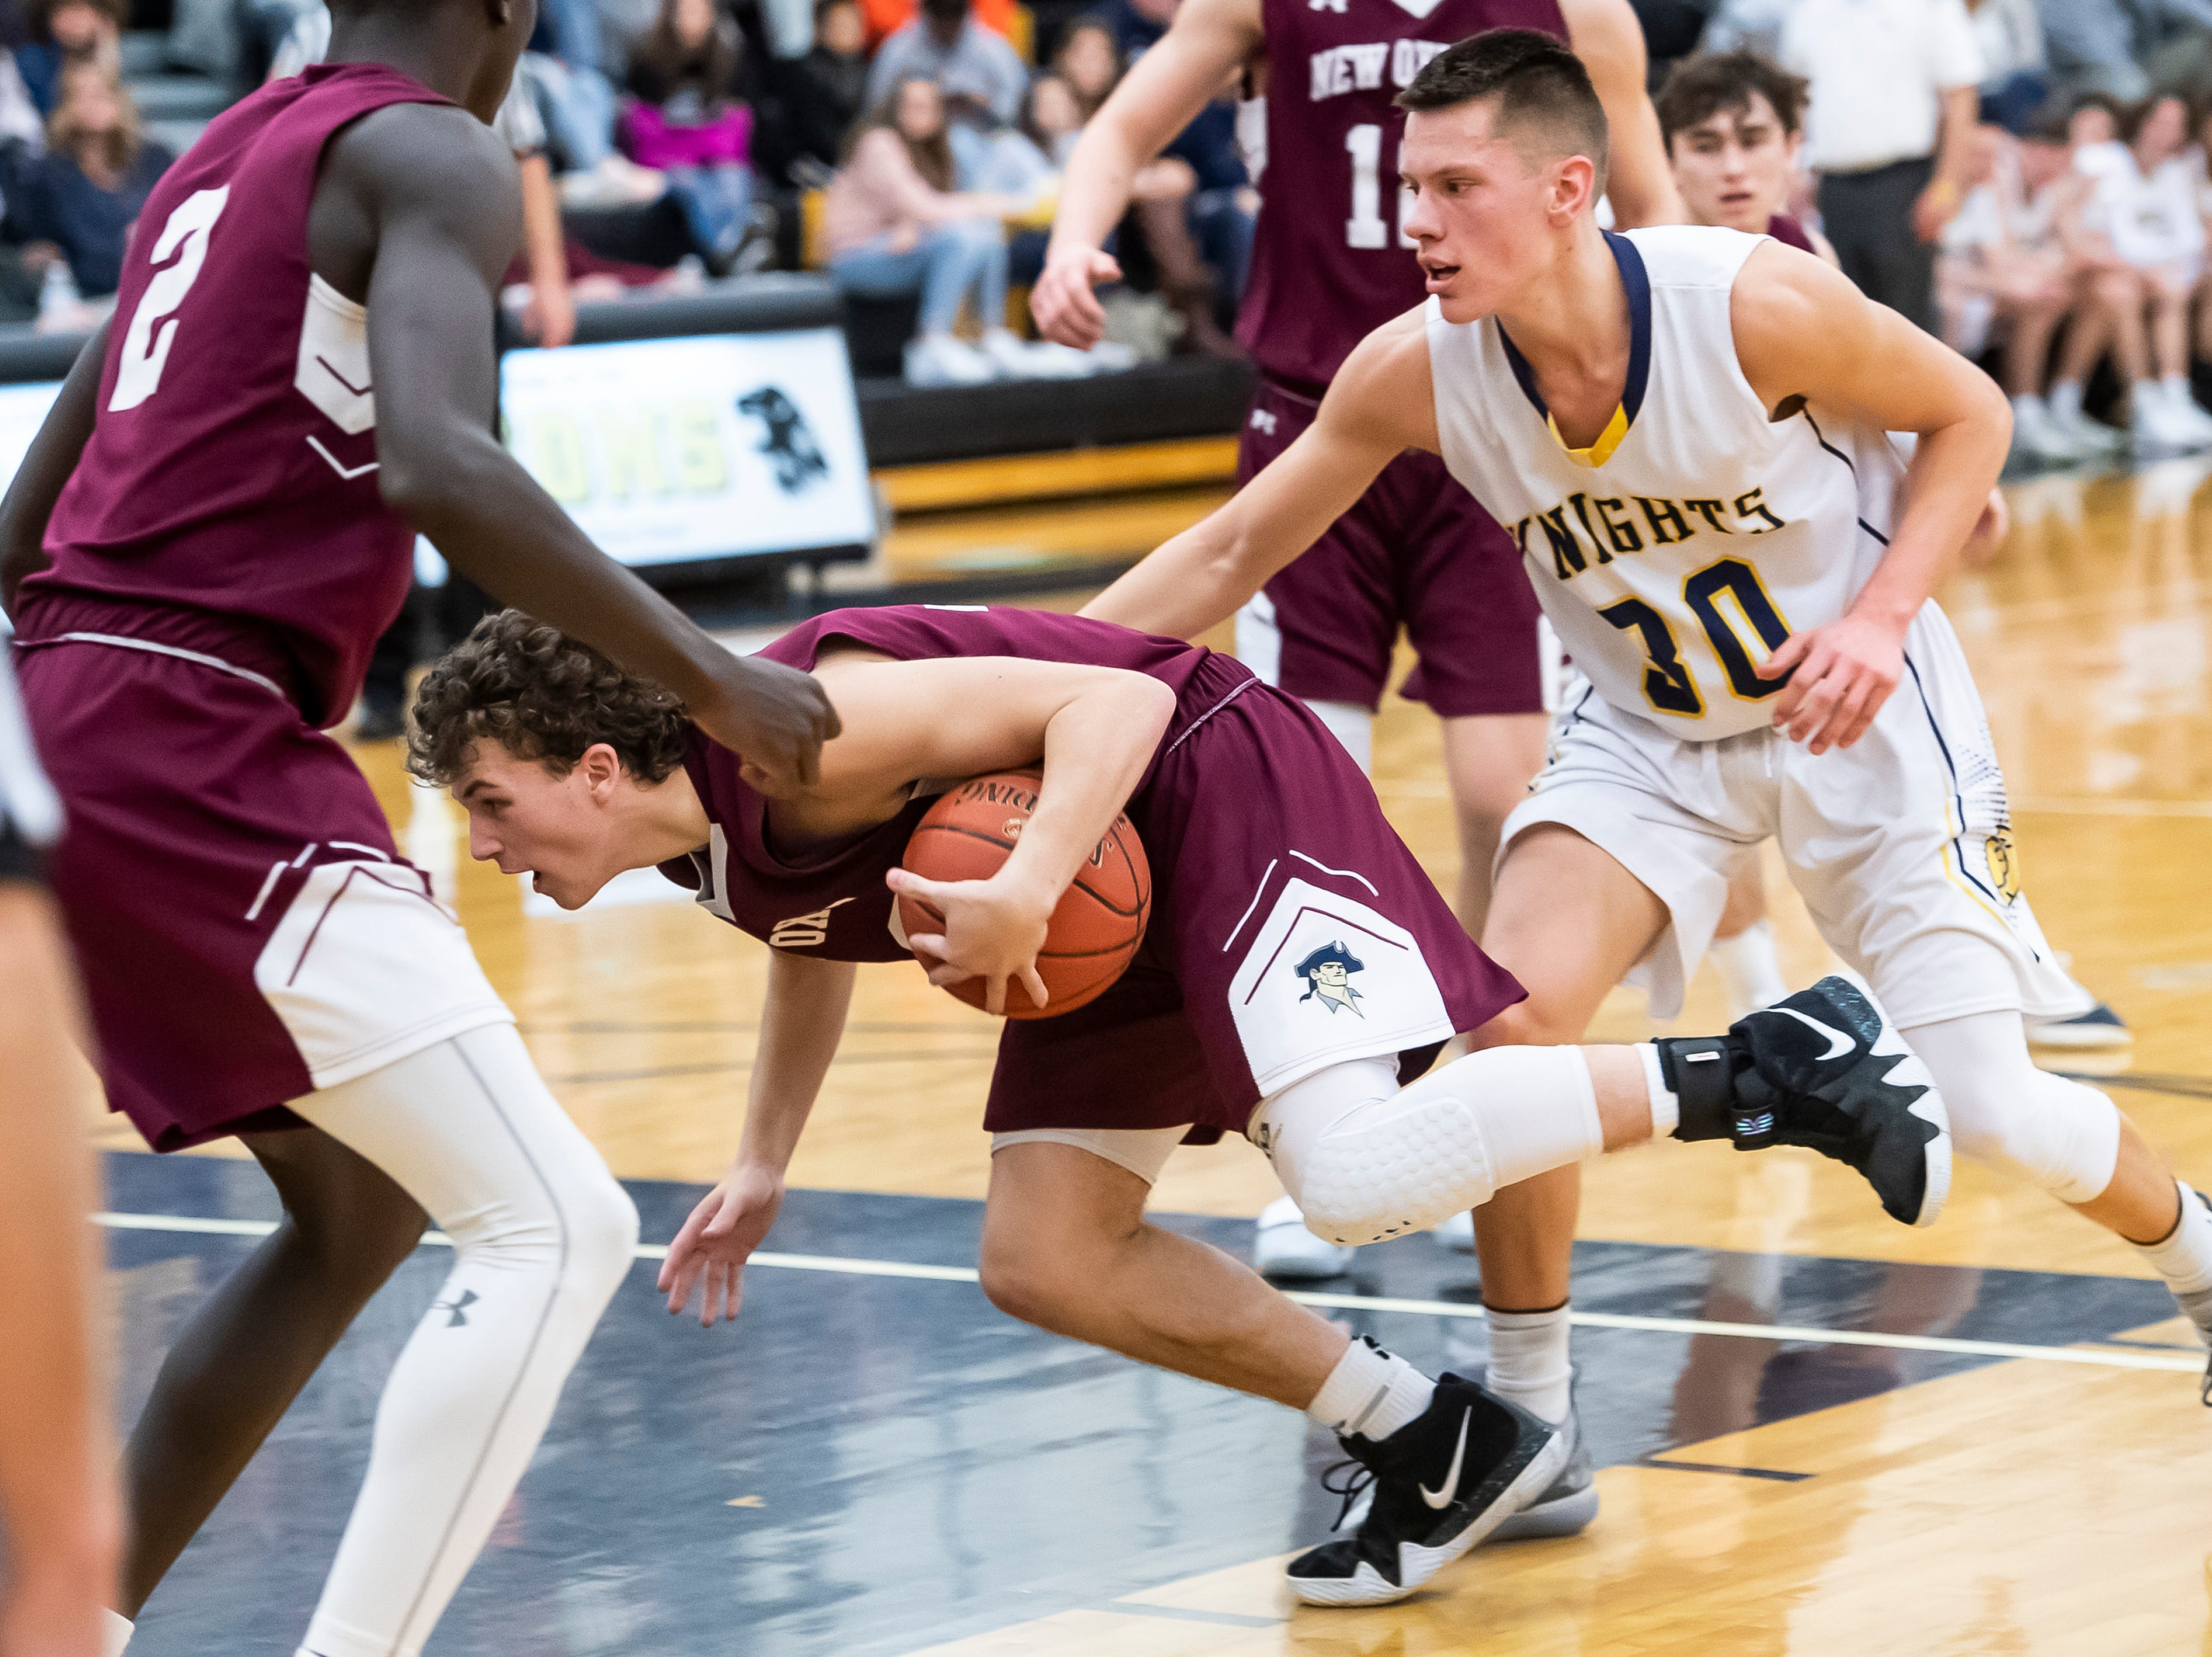 New Oxford's Connor Jenkins dives into the paint during play against Eastern York in a YAIAA quarterfinal game at Red Lion High School Saturday, February 9, 2019. The Colonials won 54-44.